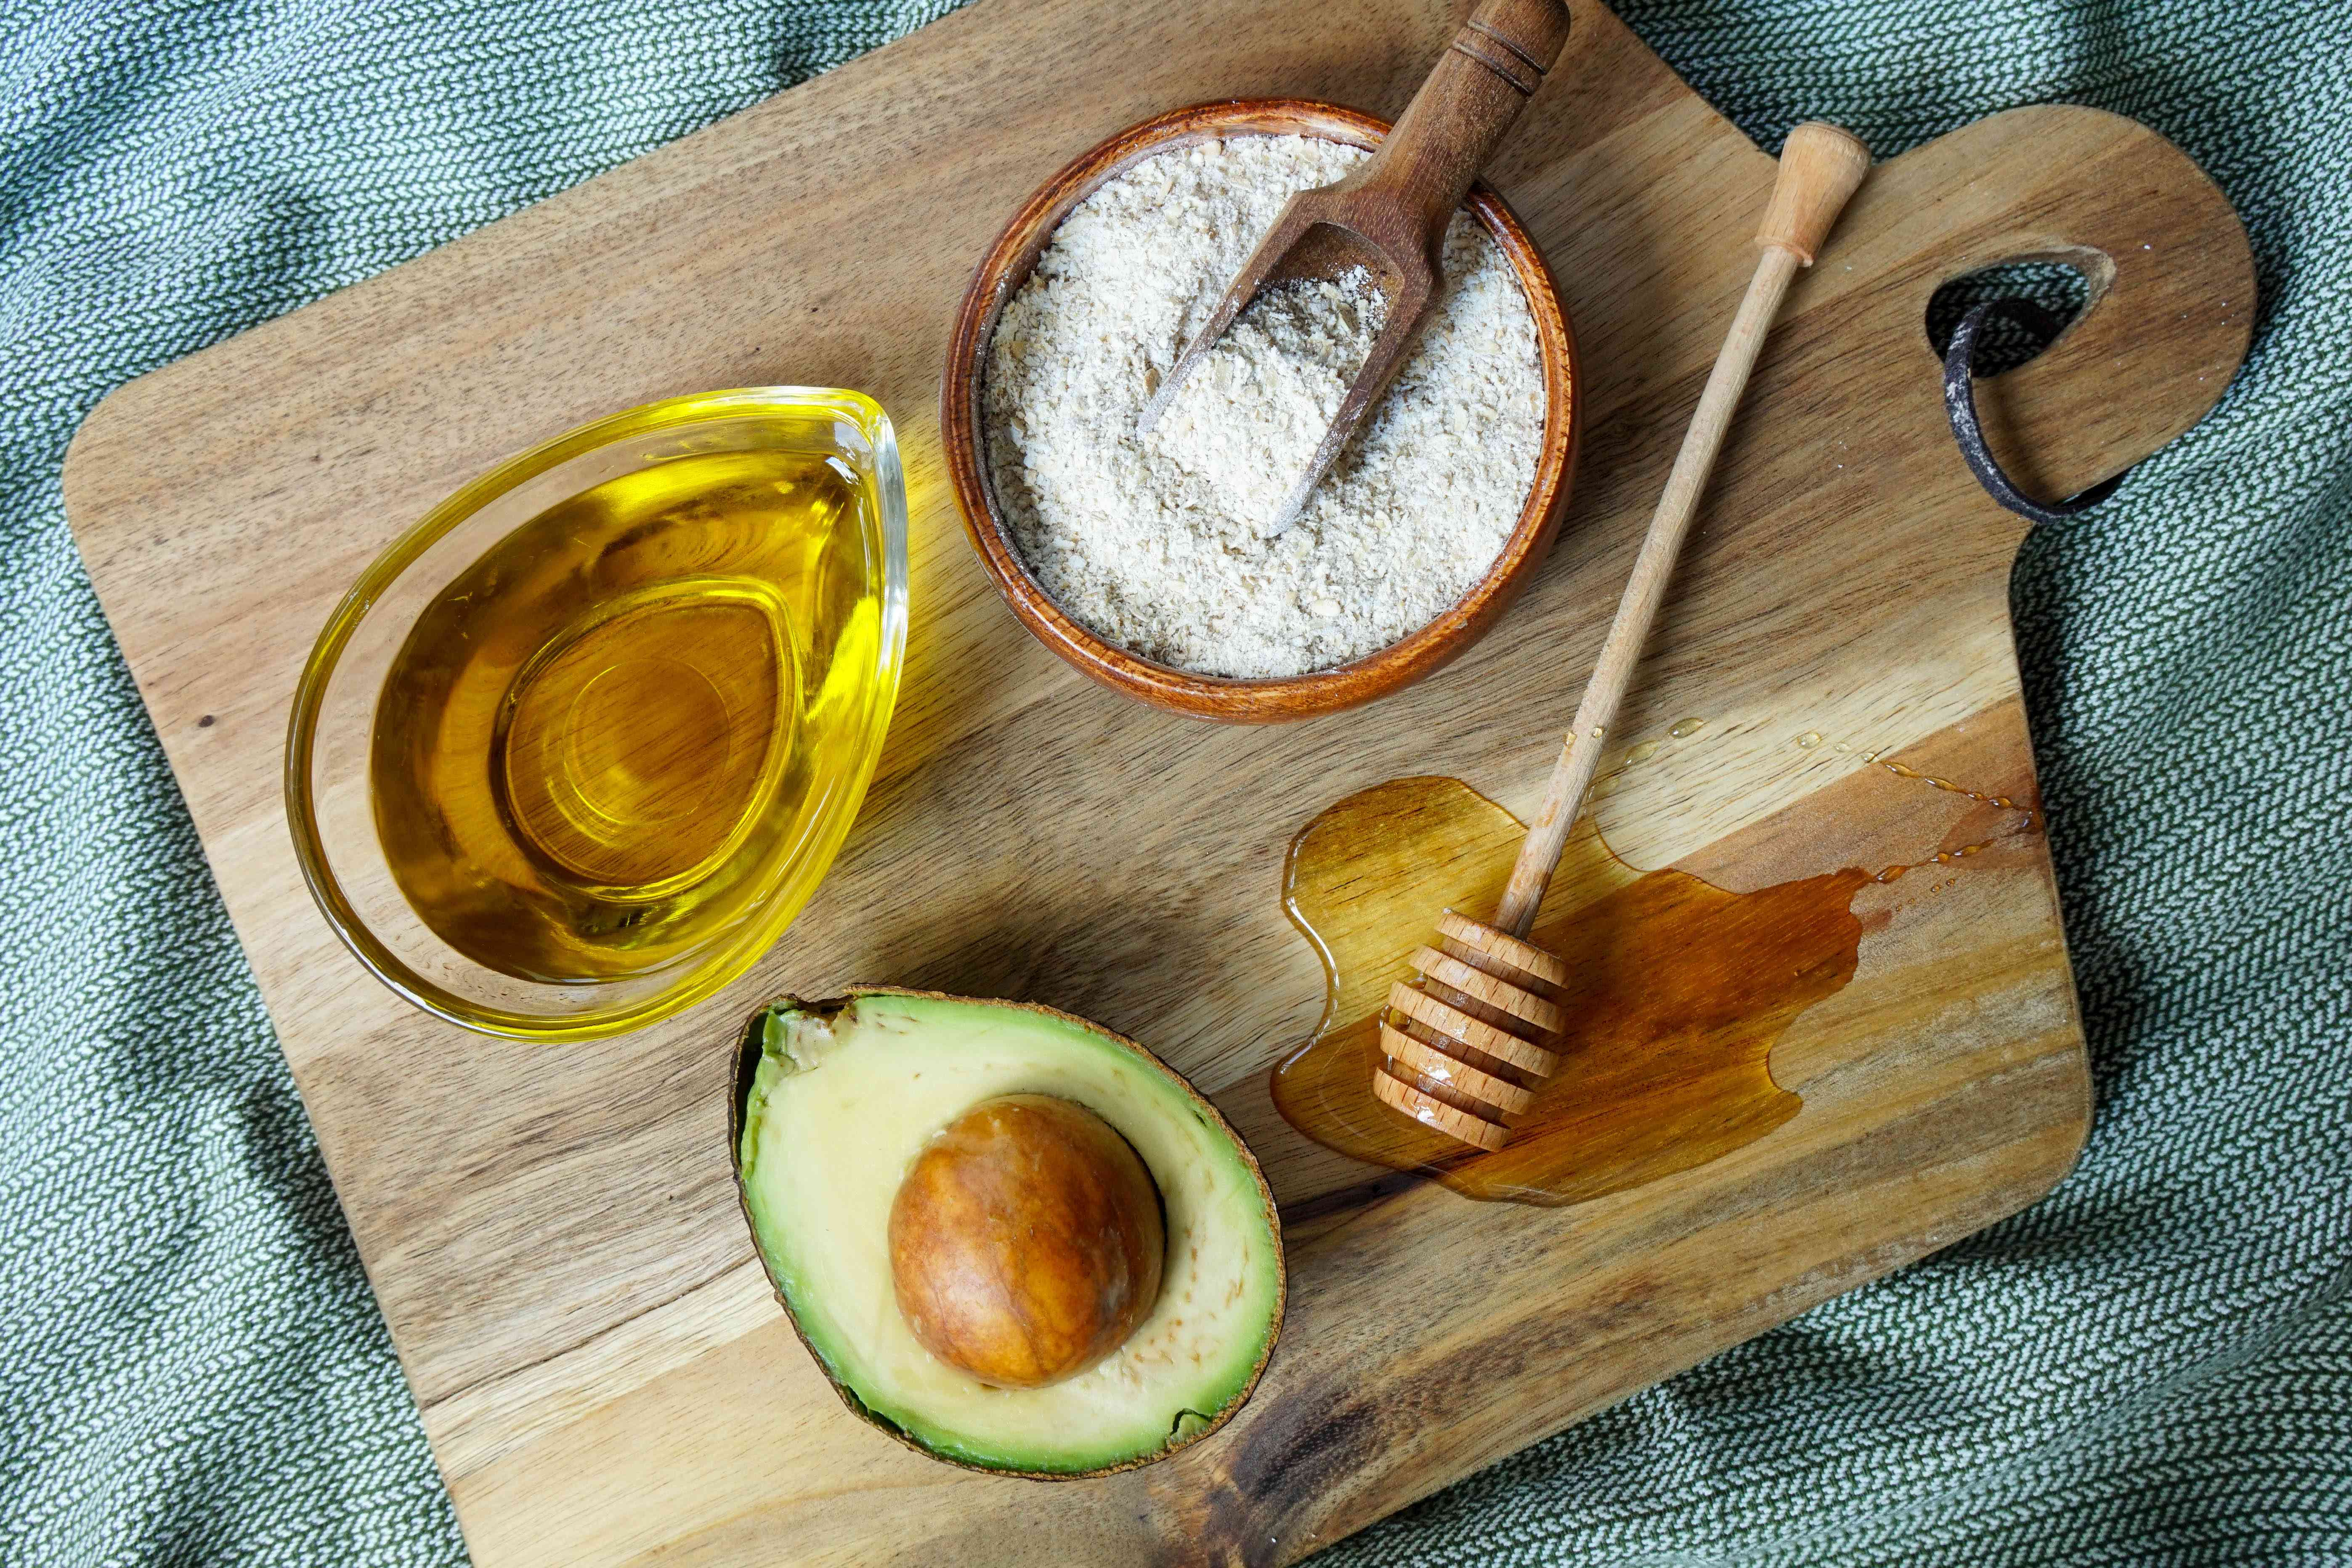 ingredients for avocado honey olive oil mask on cutting board